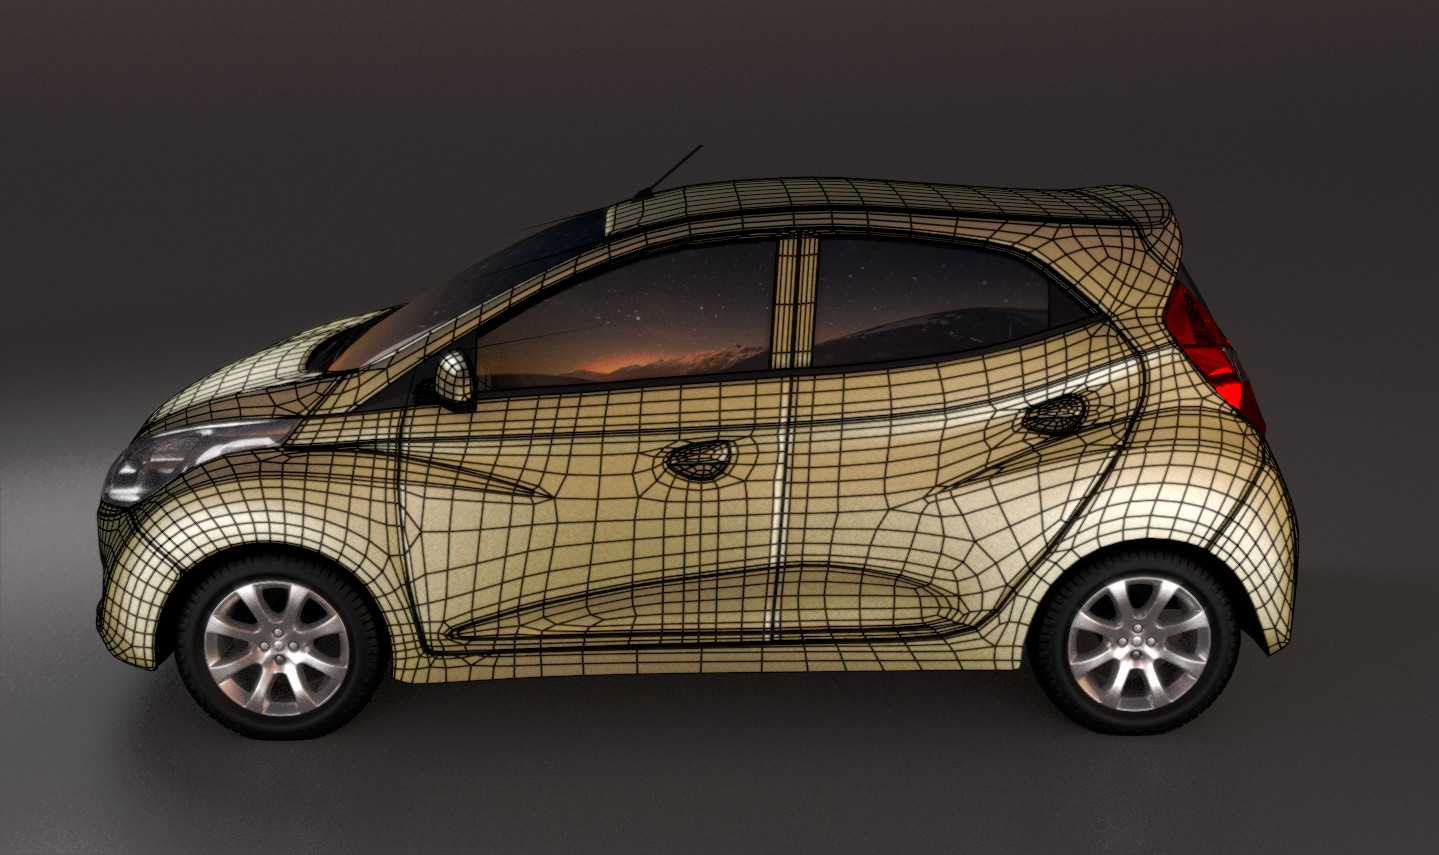 The wireframe render of the side view.